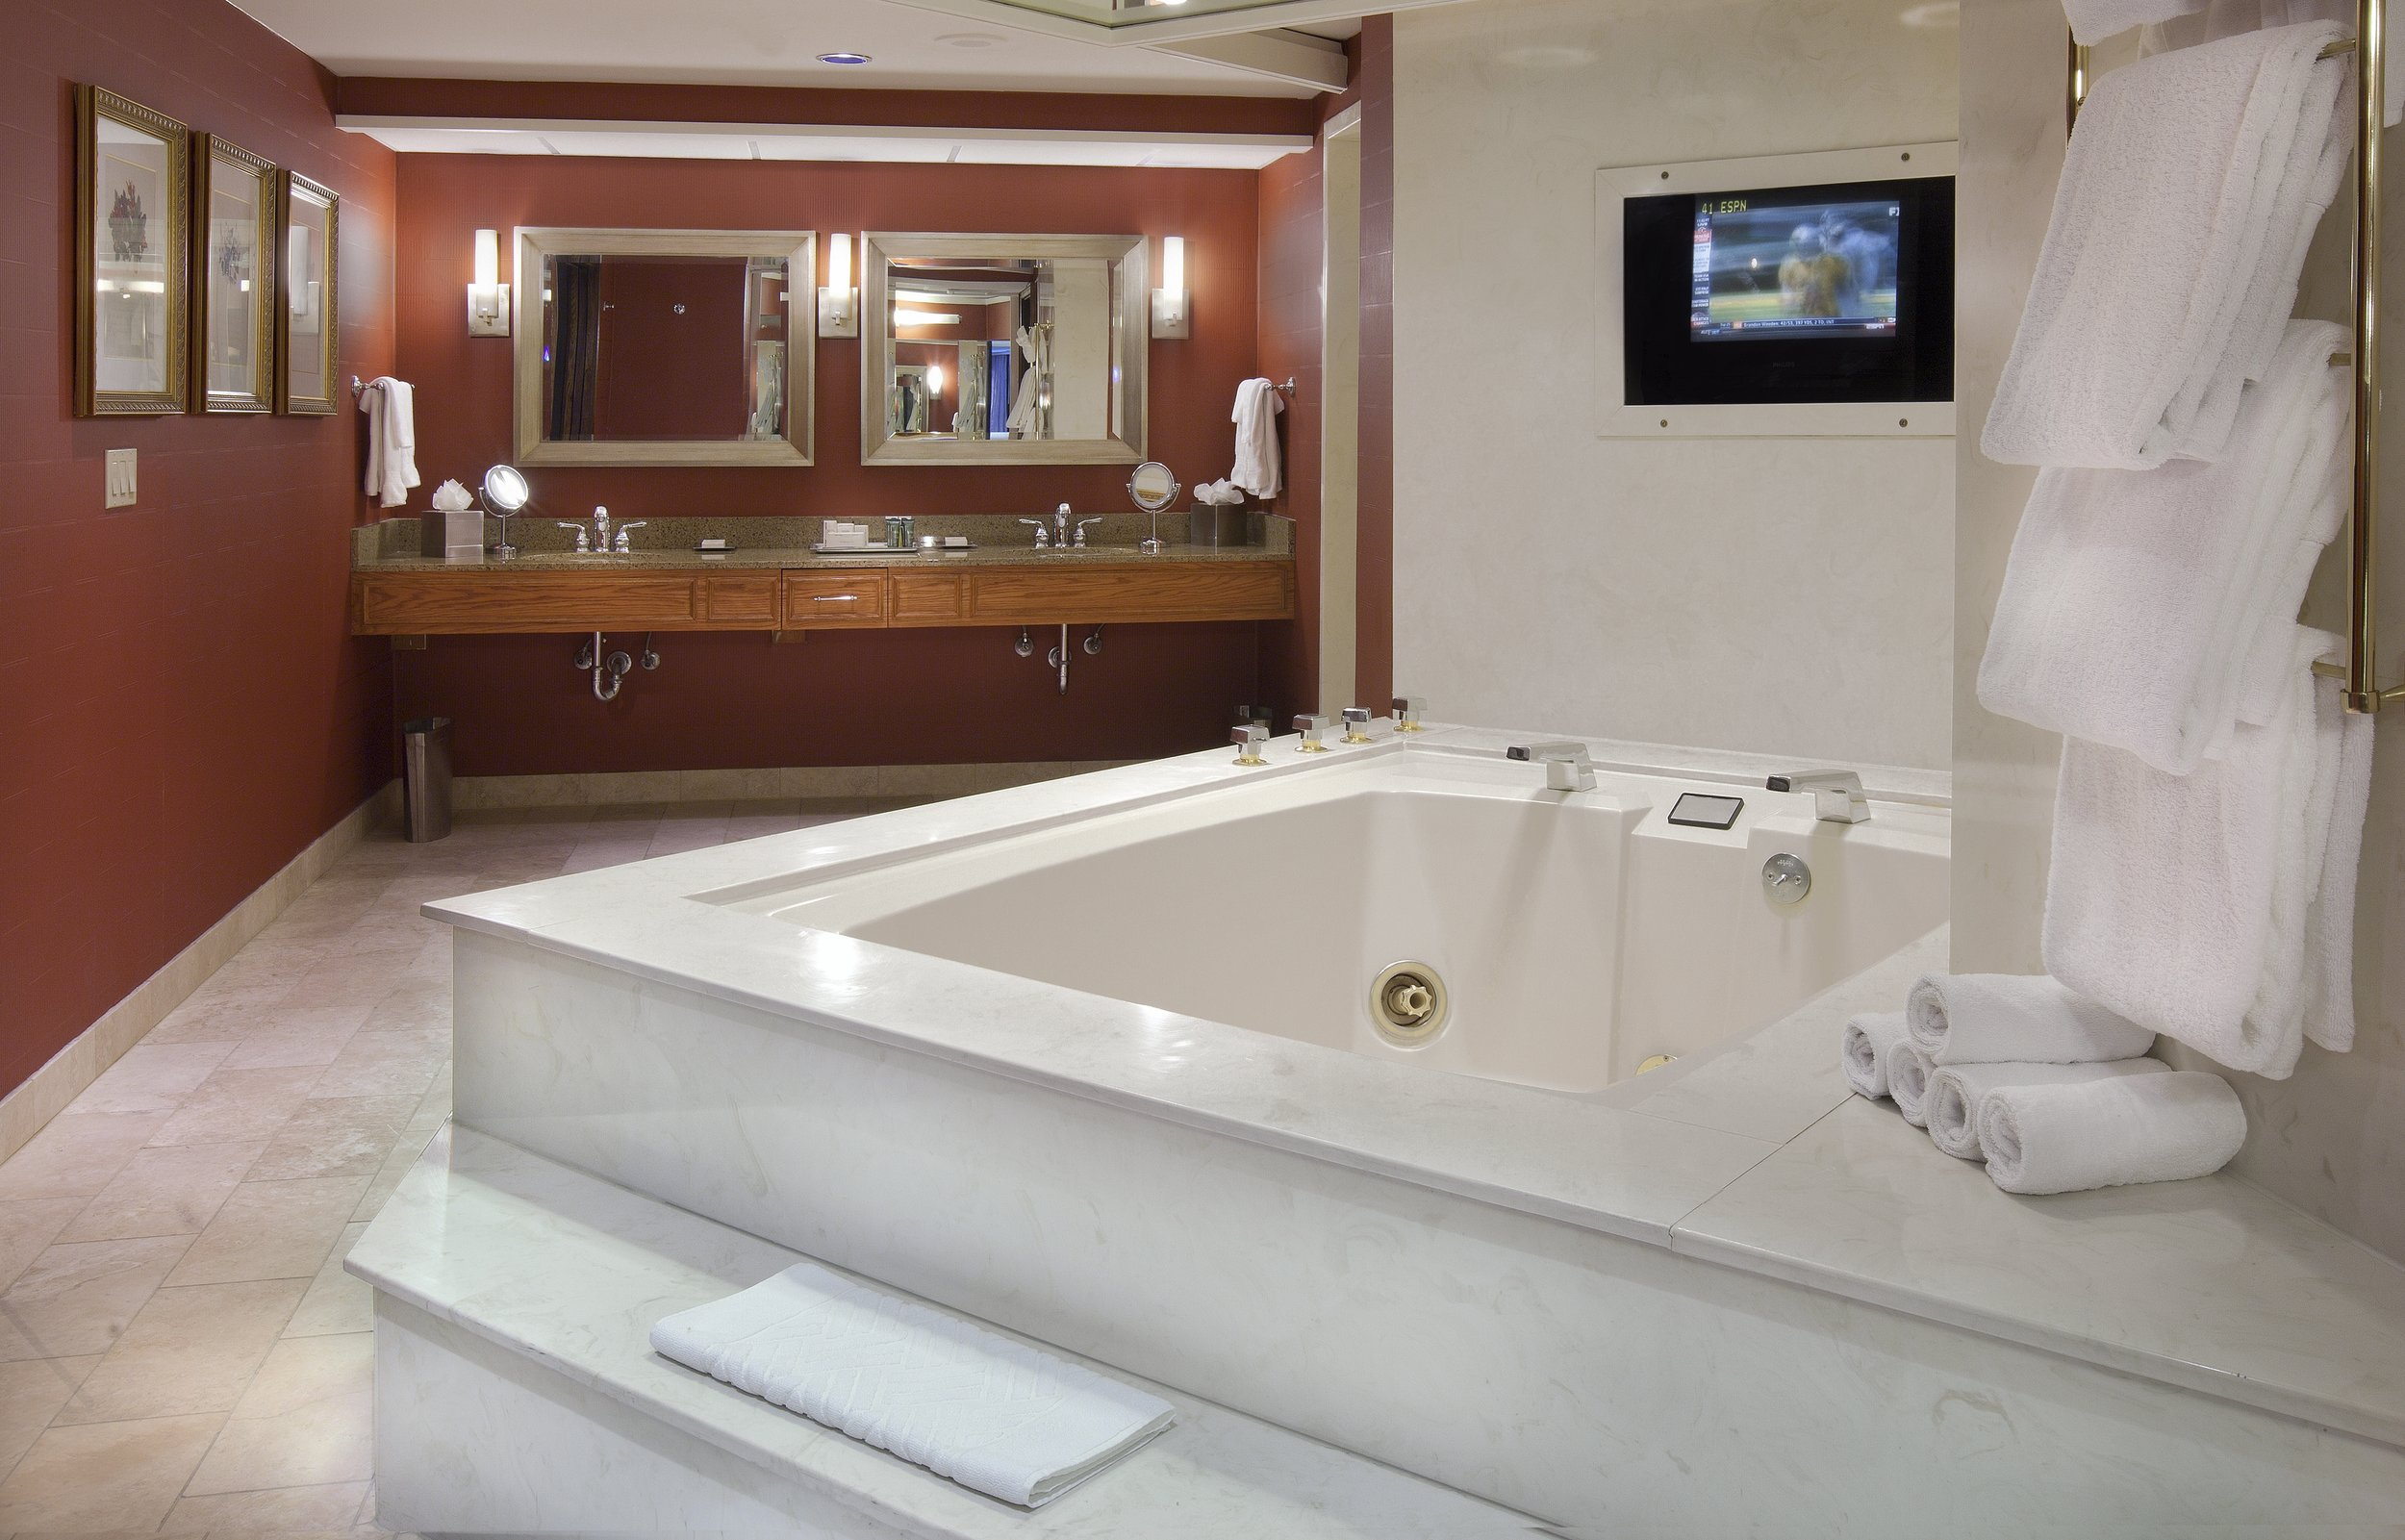 Presidential Suite Bathroom.JPG